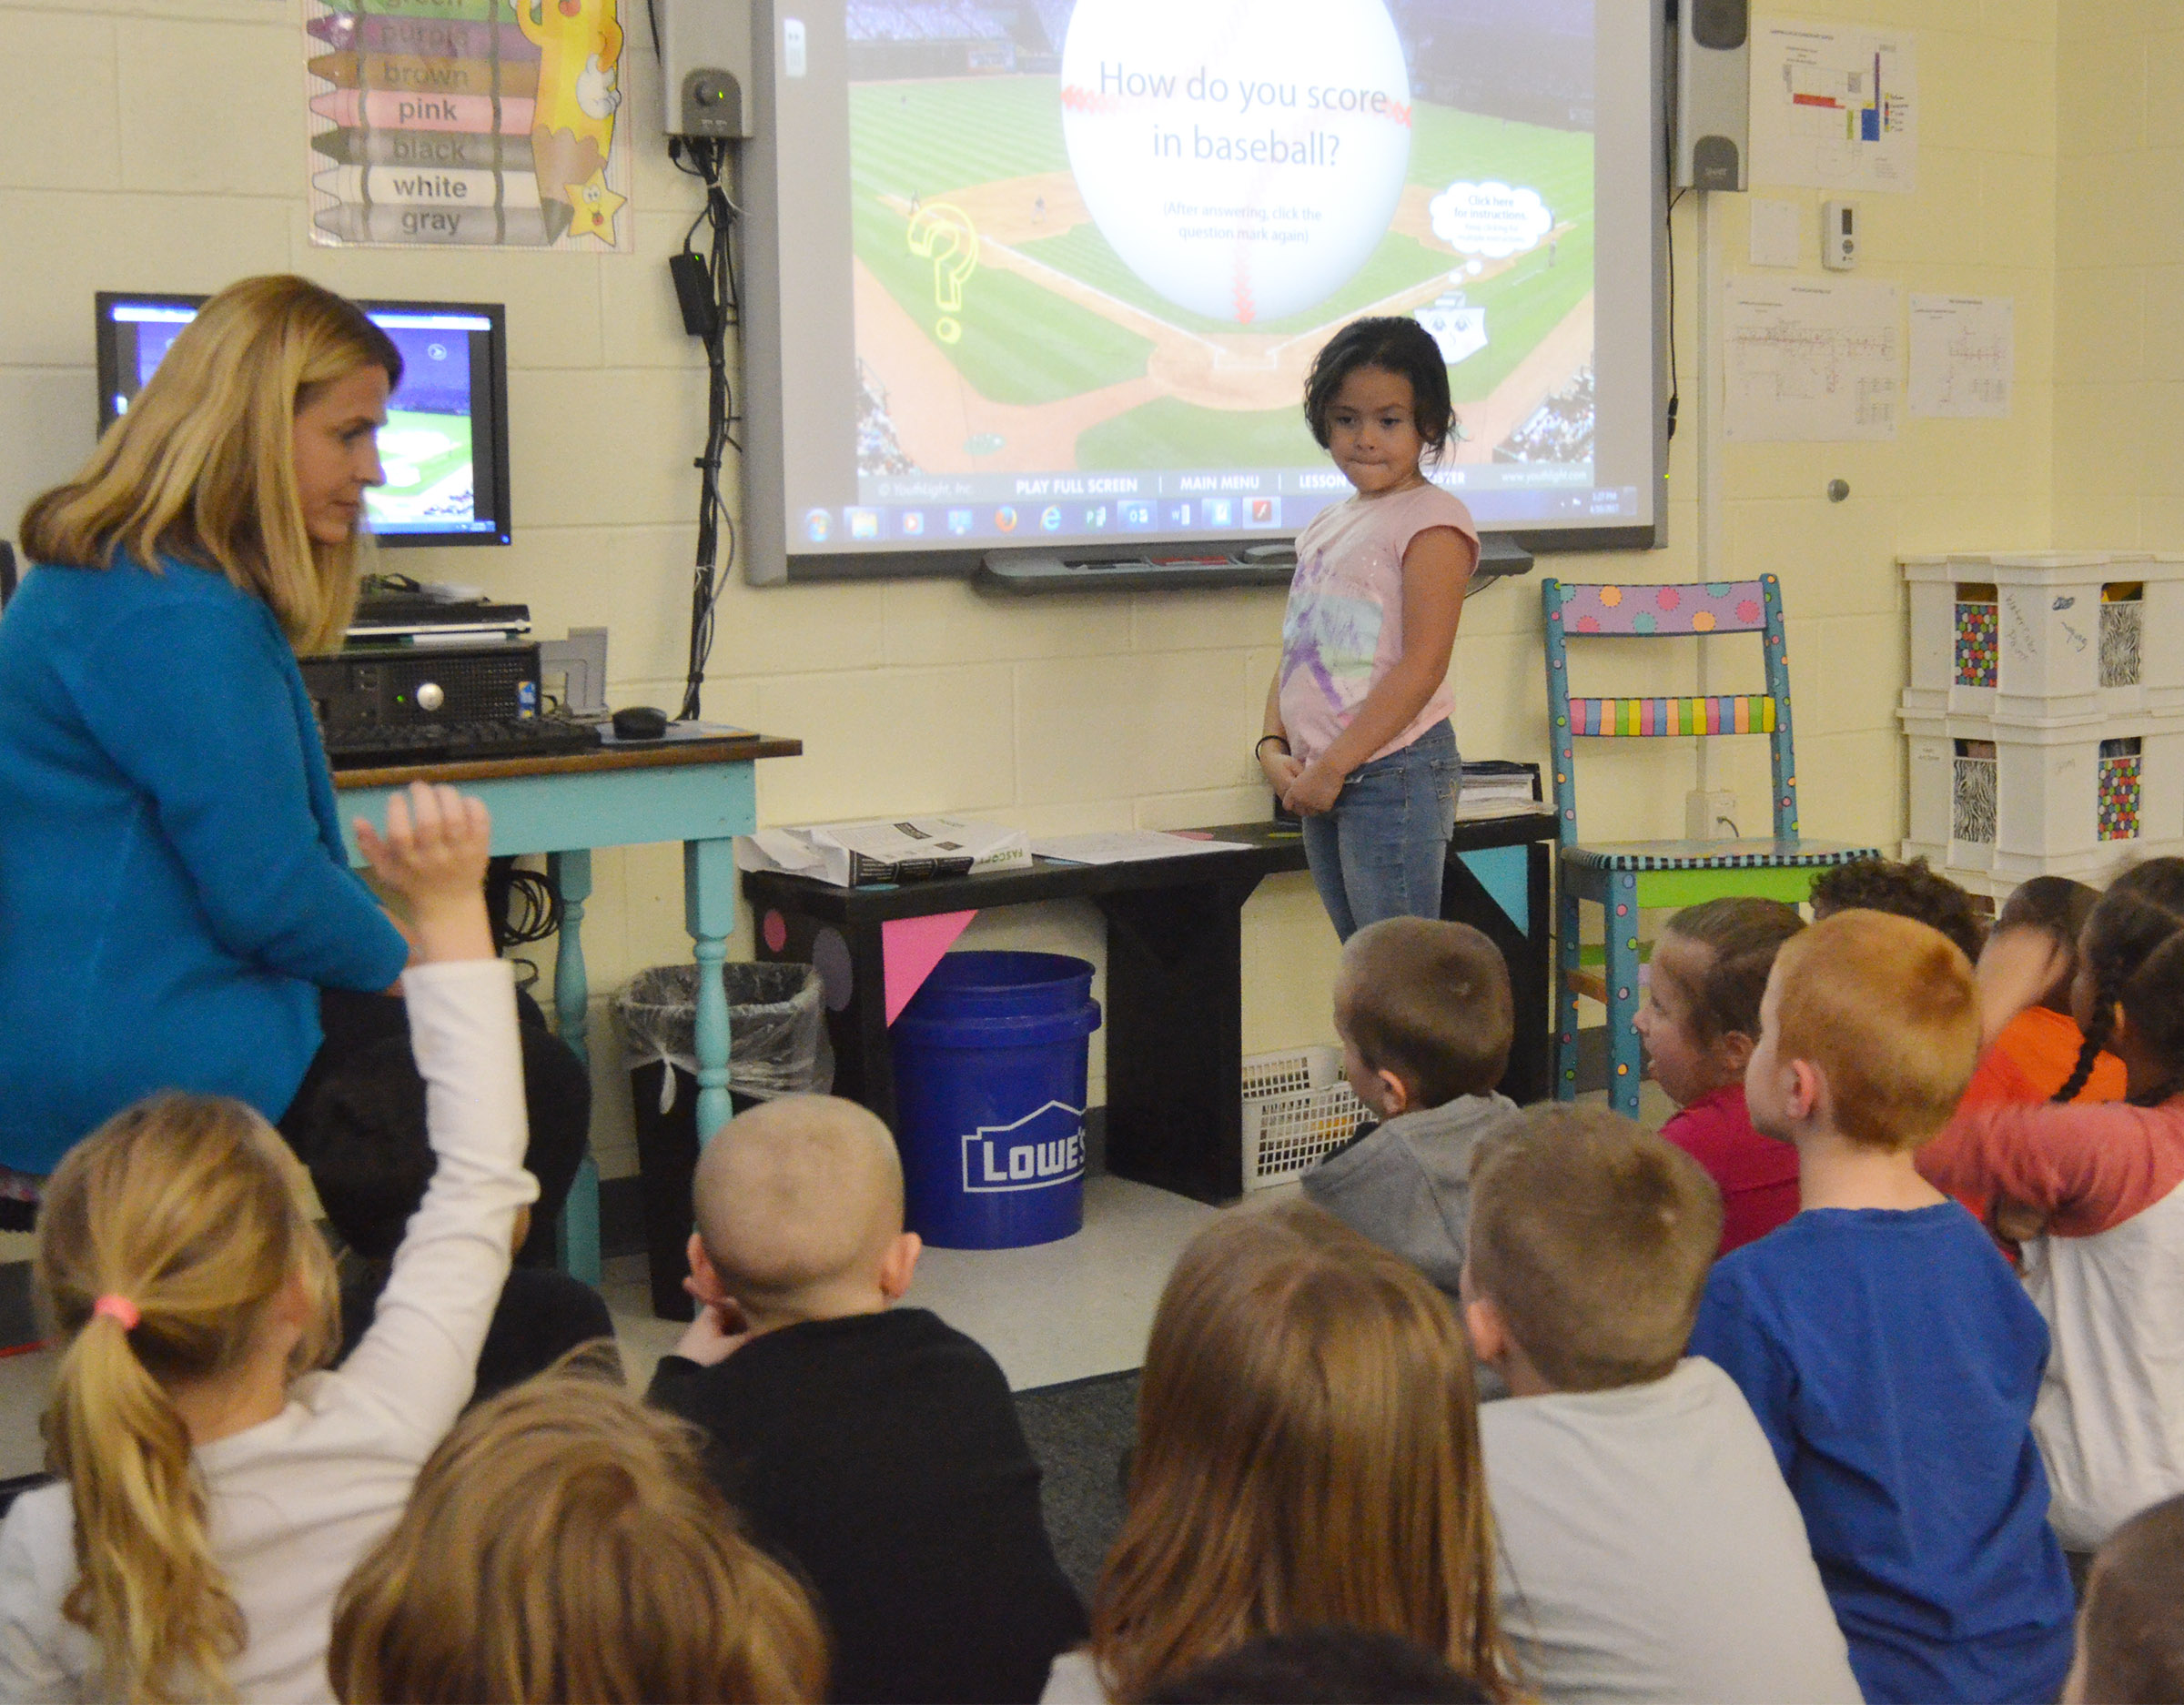 CES kindergartener Isabella Anderson helps Guidance Counselor Sonya Orberson answer a question about a respect. By answering the question correctly, Anderson's baseball team scored a run.